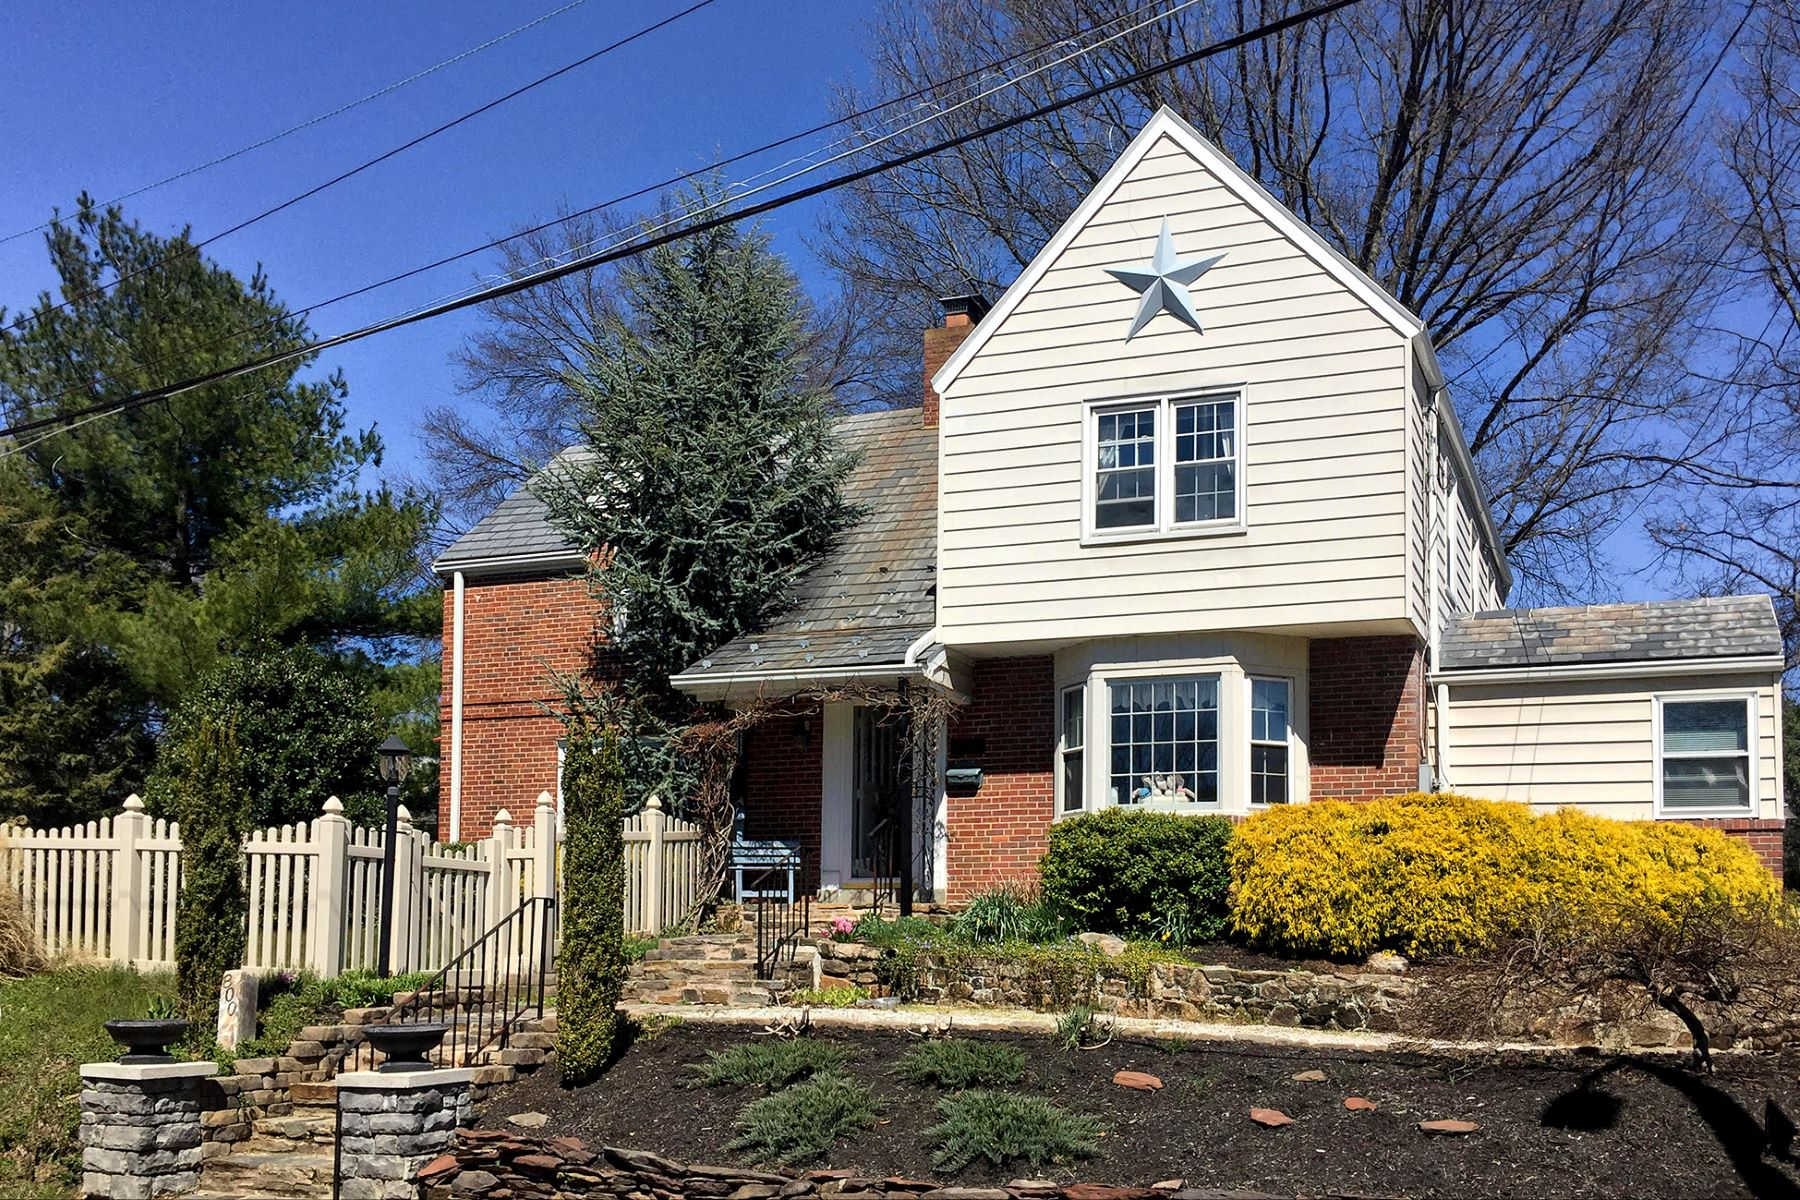 Single Family Home for Sale at Character, Charm, and Warmth Filled 1940s Home - Lawrence Township 800 Lawrence Road Lawrence, New Jersey 08648 United States